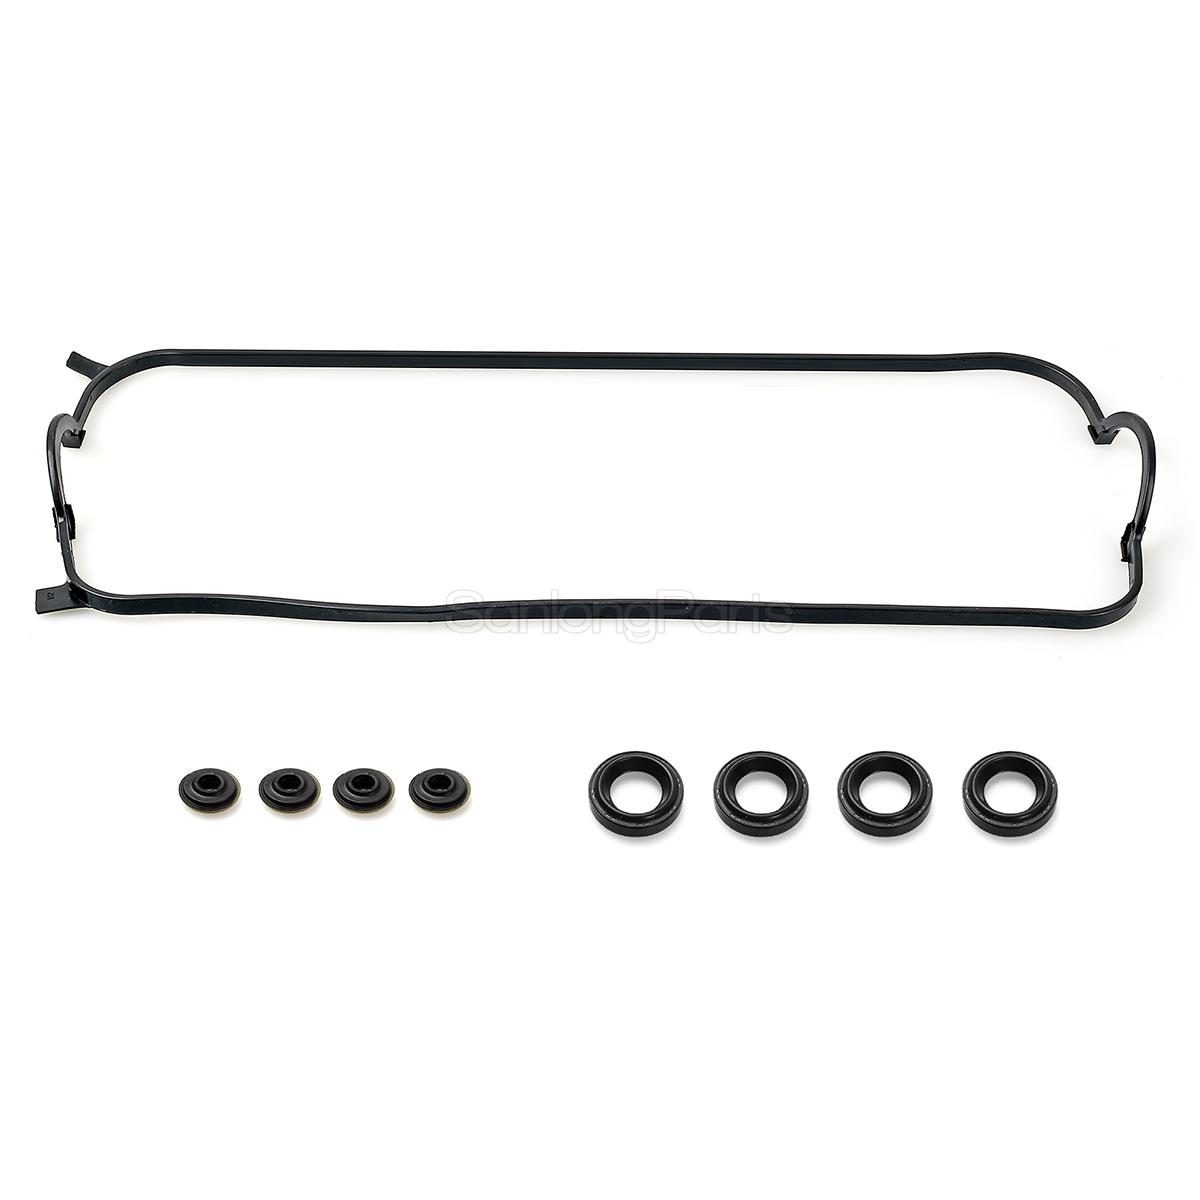 Valve Cover Gasket For Honda For Acura For Isuzu 2.2L 2.3L